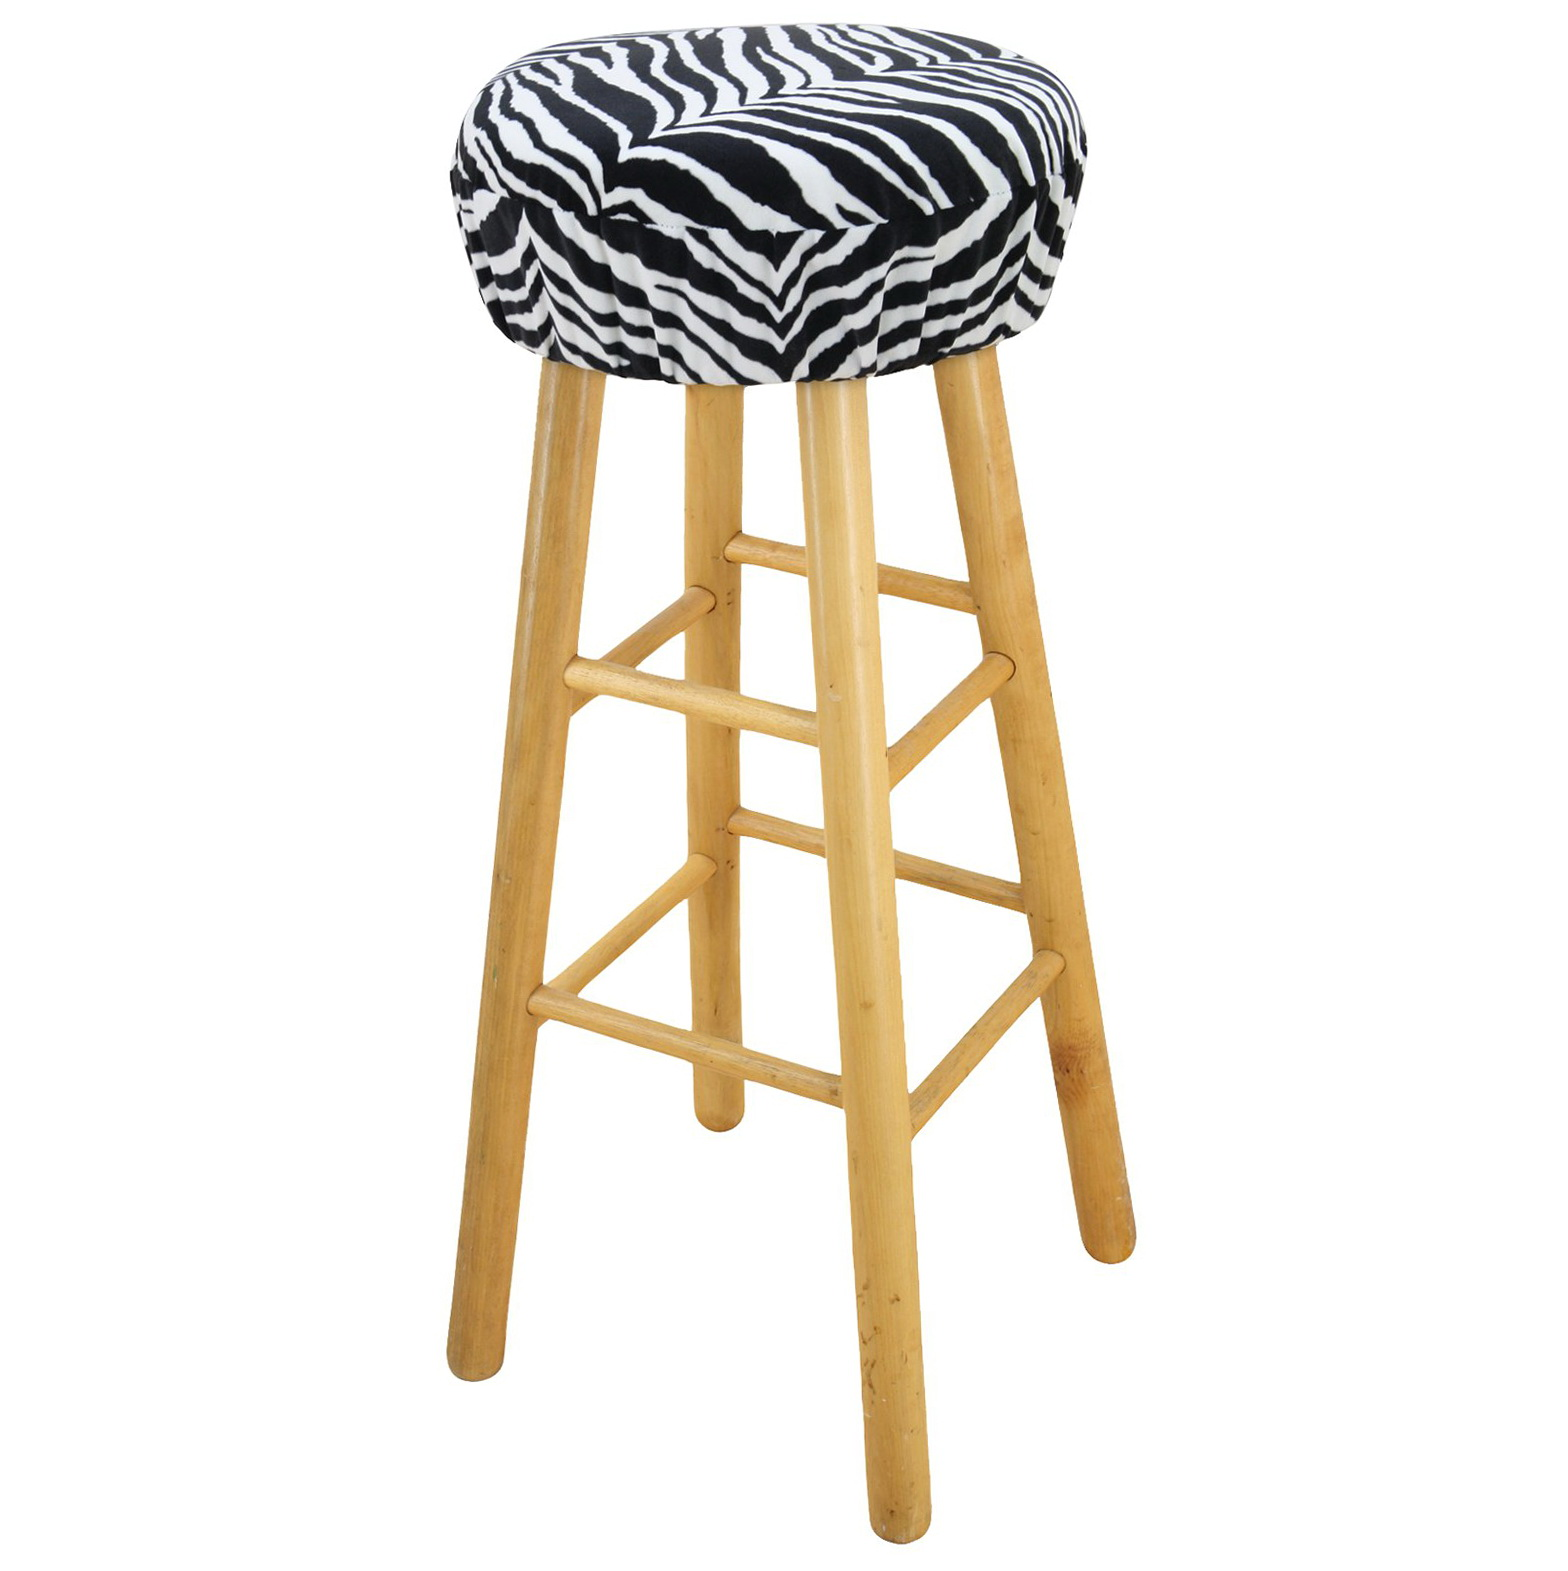 Round Bar Stool Cushion Covers Home Design Ideas : round bar stool cushion covers from www.zintaaistars.com size 1568 x 1571 jpeg 258kB